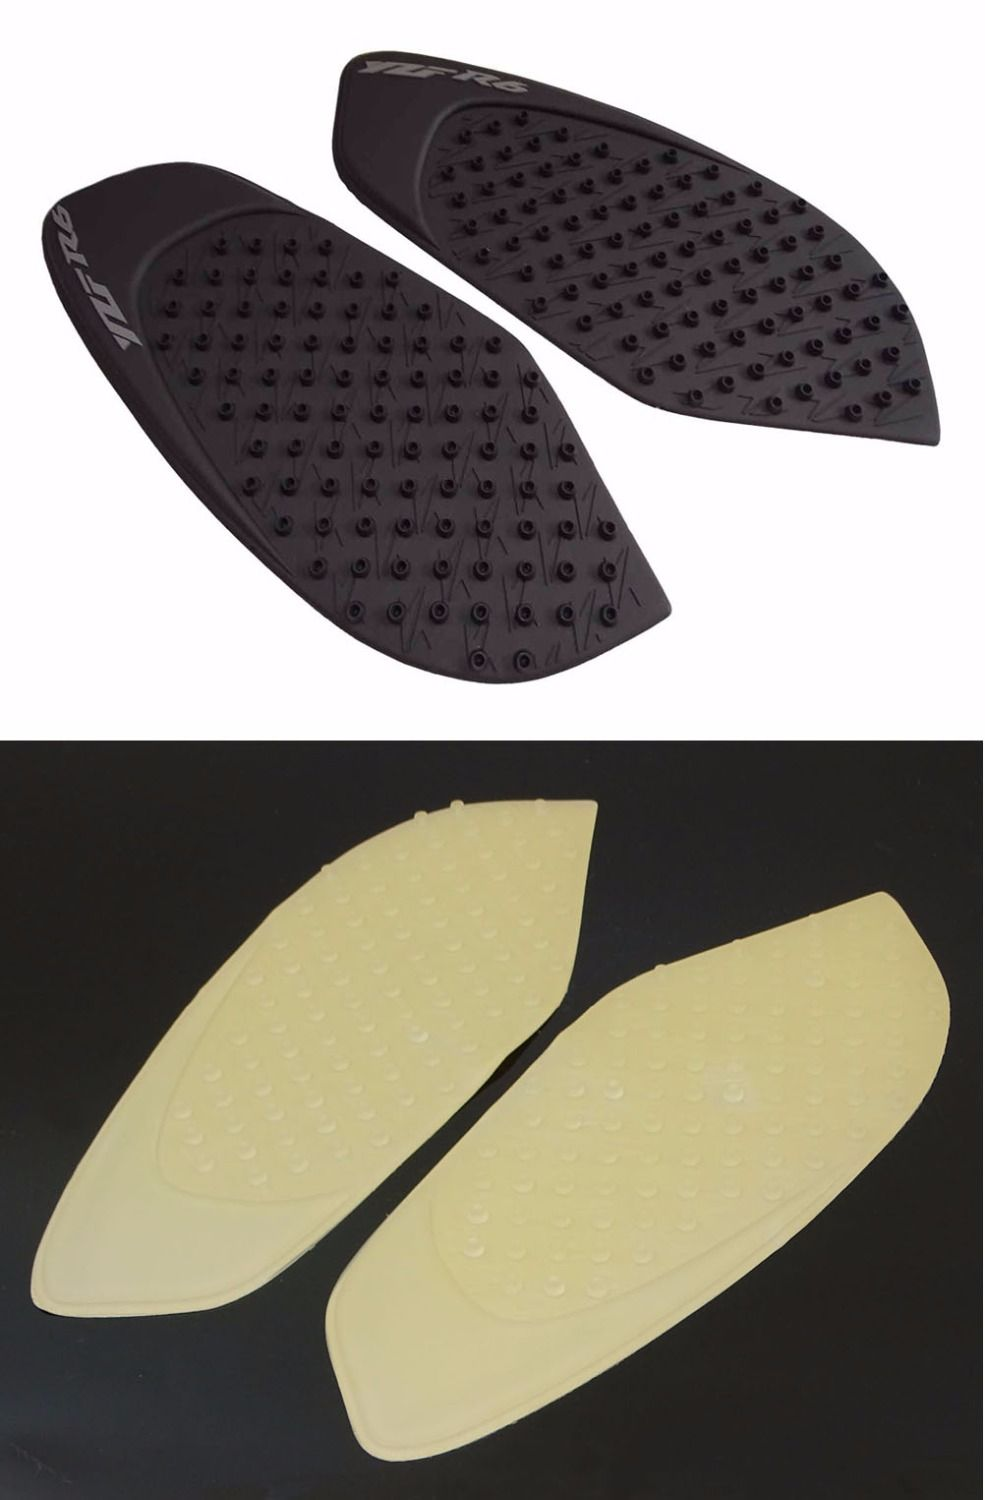 waase Tank Pad Protector Sticker Decal Gas Knee Grip Traction Pad Side 3M For Yamaha YZF R6 2008 2009 2010 2011 2012 2013-2016